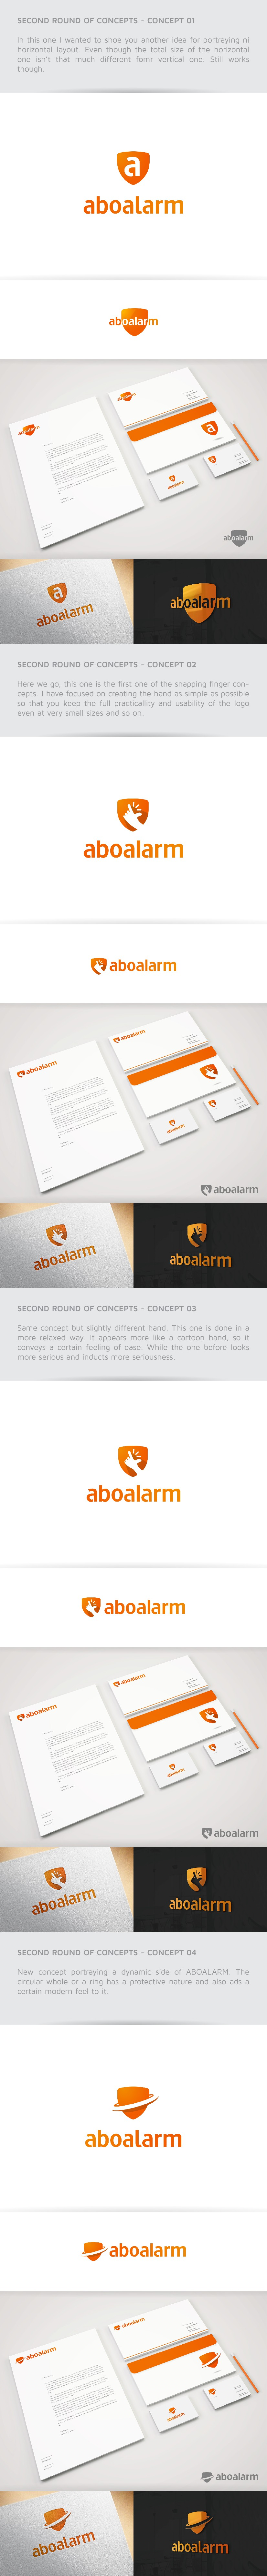 aboalarm needs a new simple and timeless LOGO!